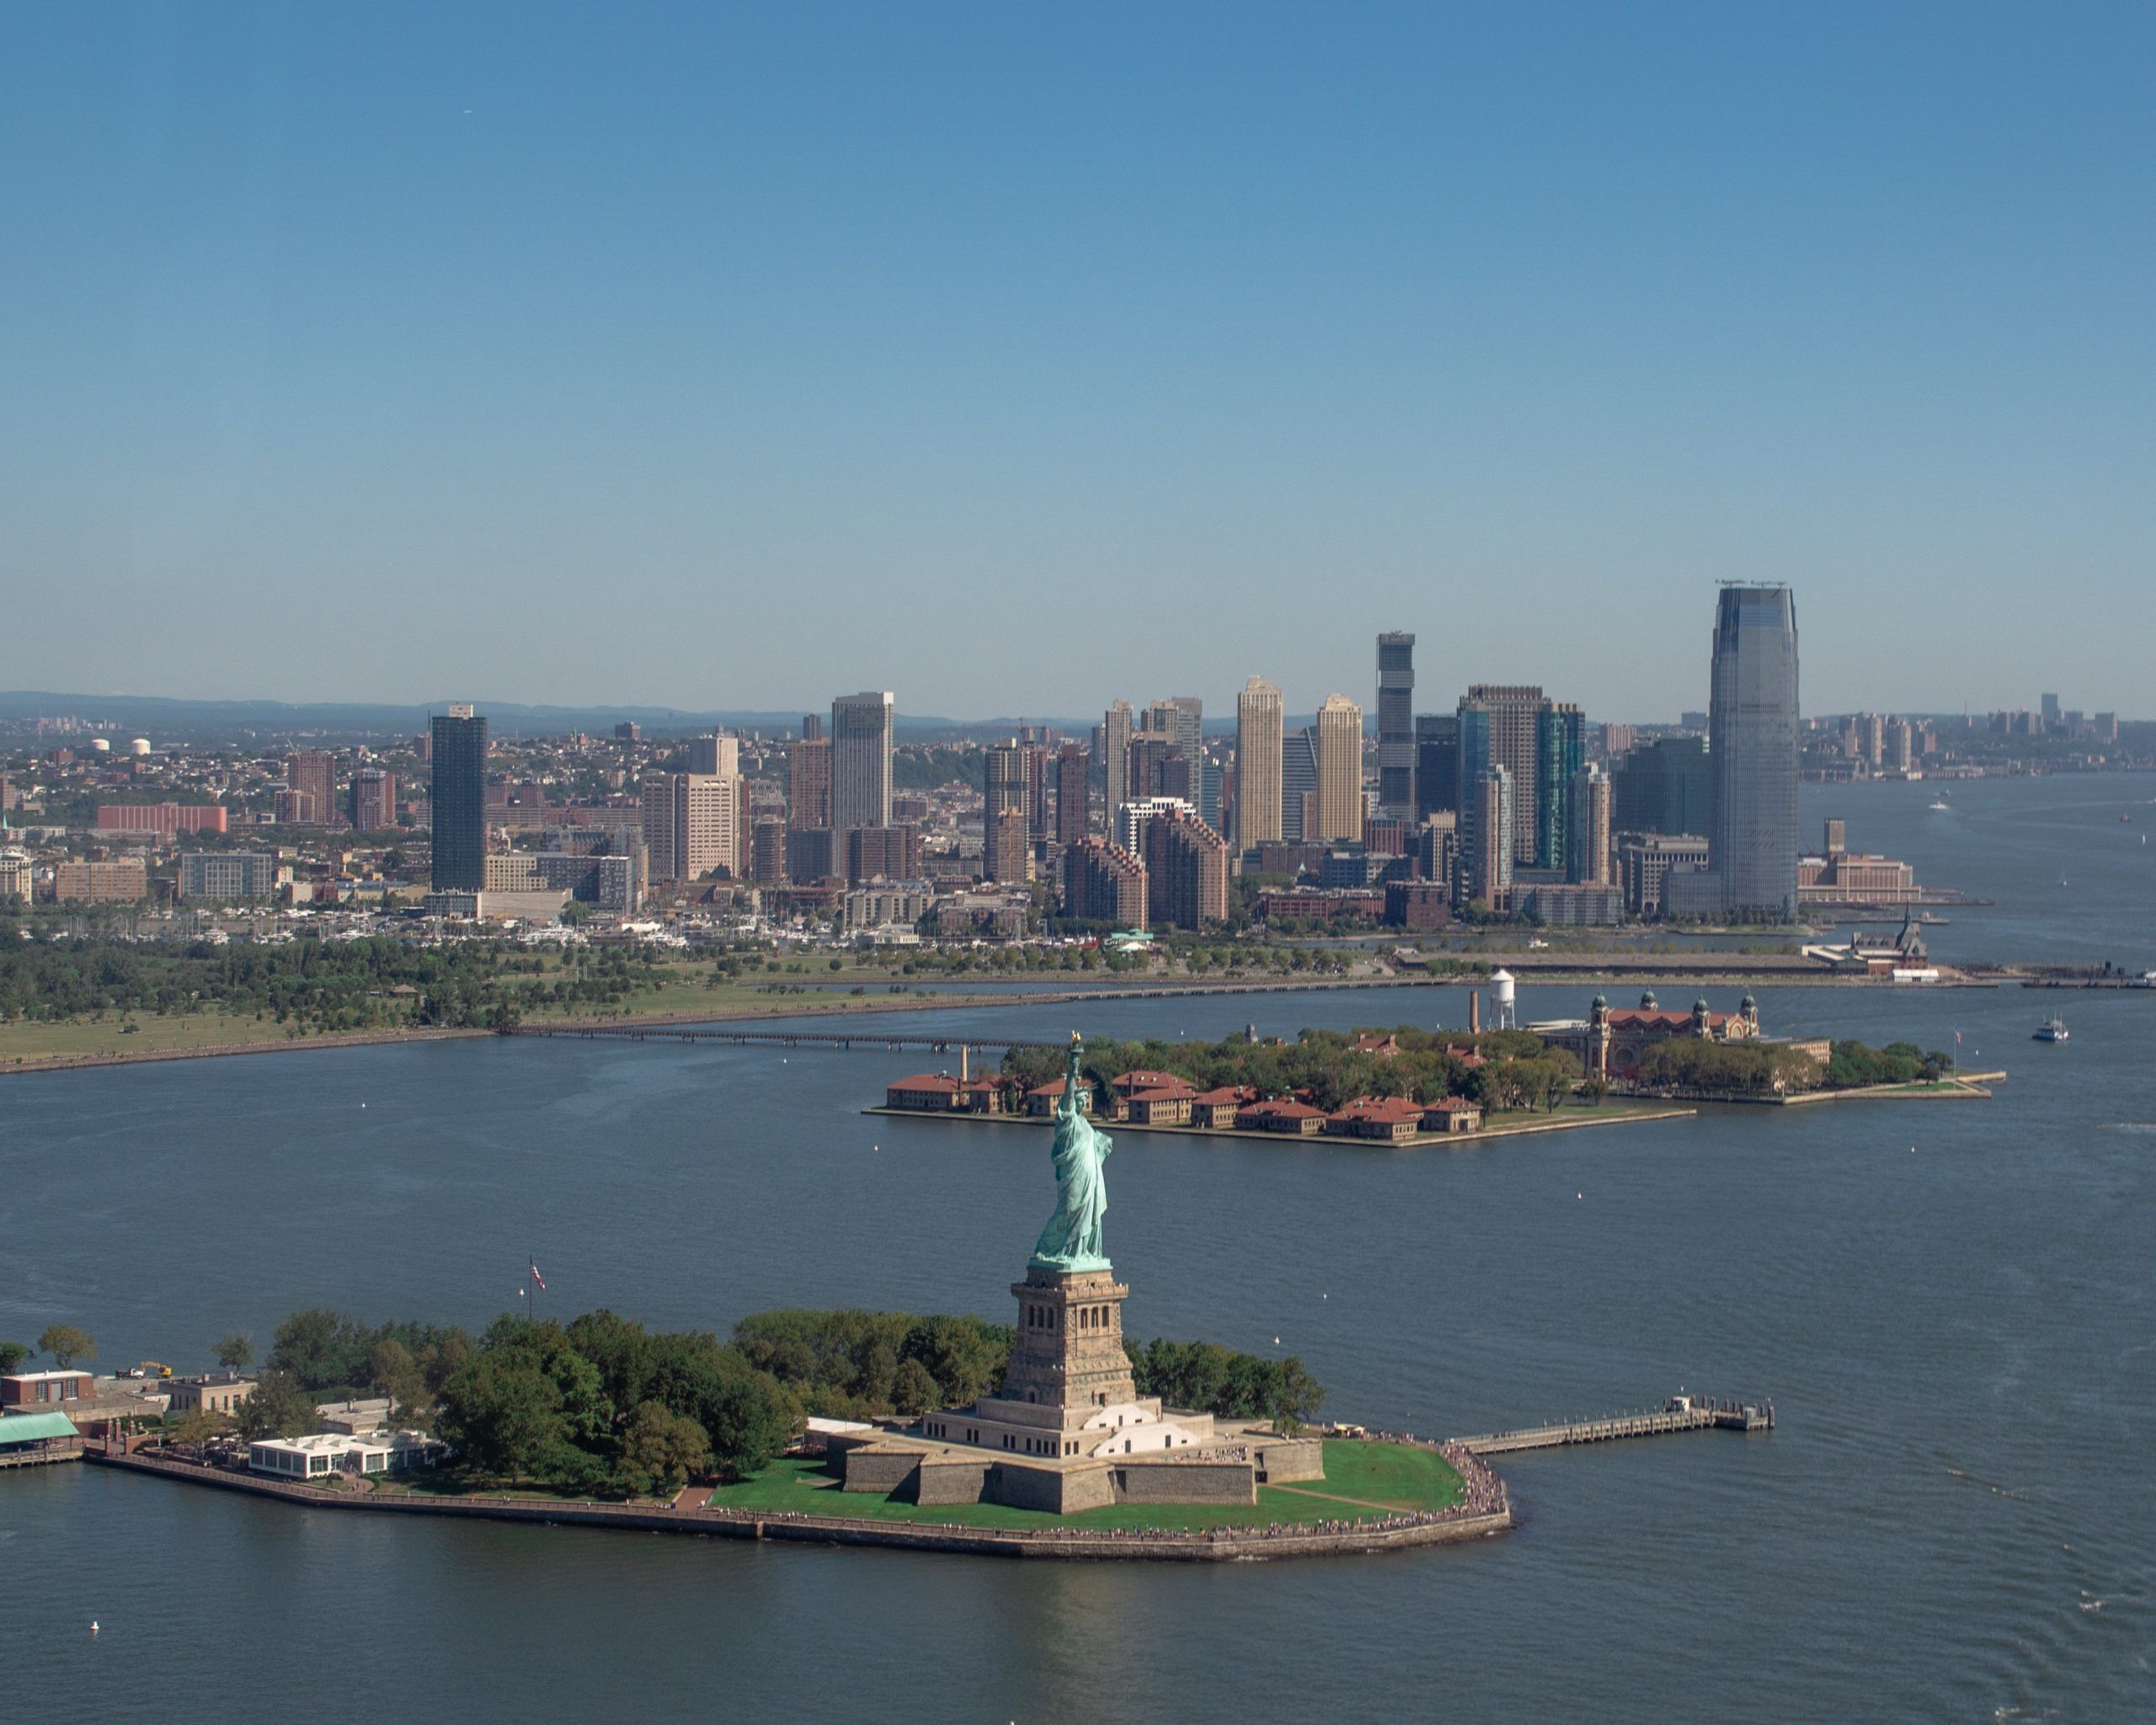 The Statue of Liberty - View from a helicopter